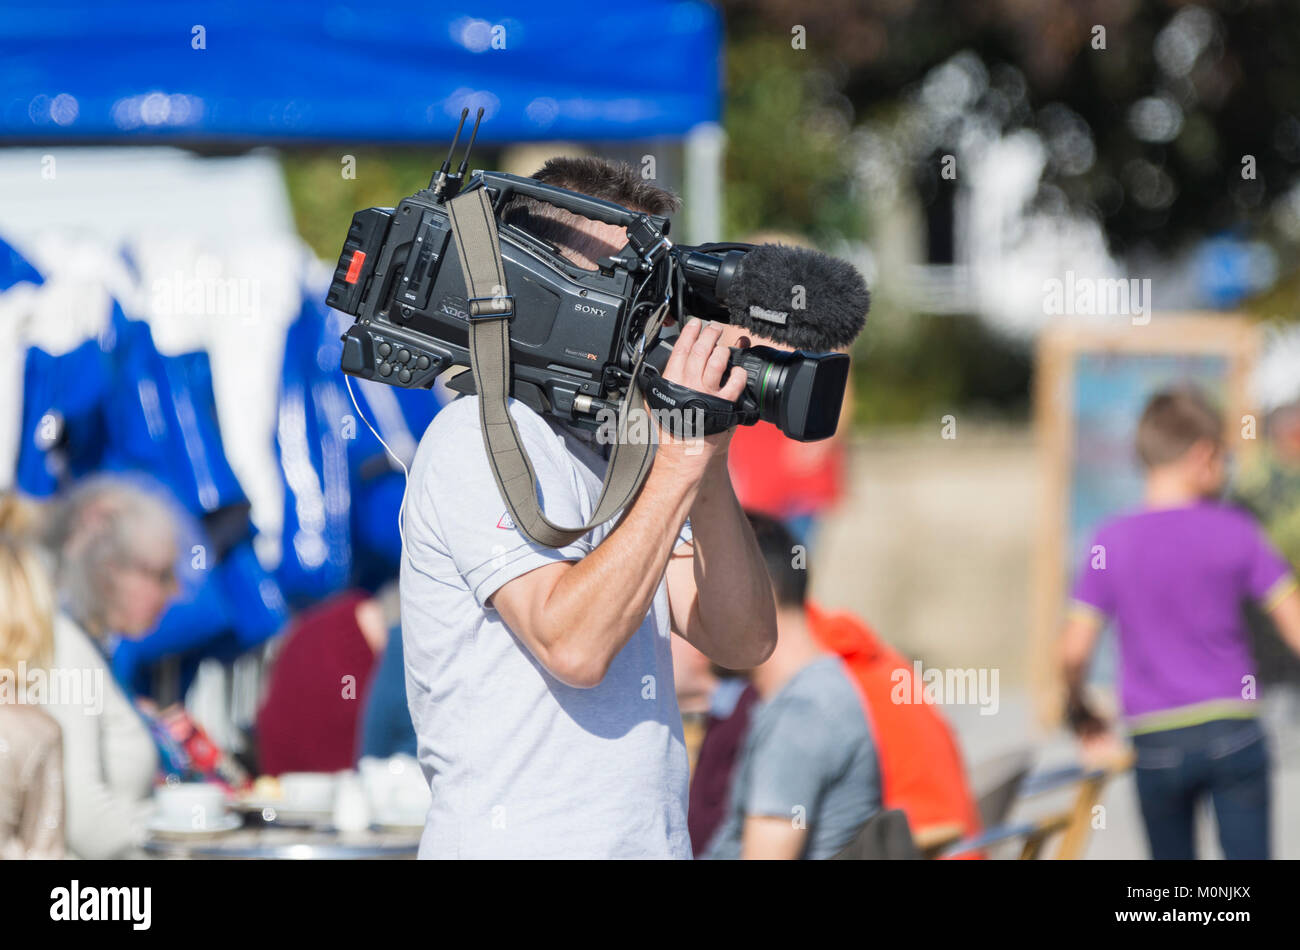 TV cameraman holding a professional Sony video camera for an outside broadcast in the UK. - Stock Image